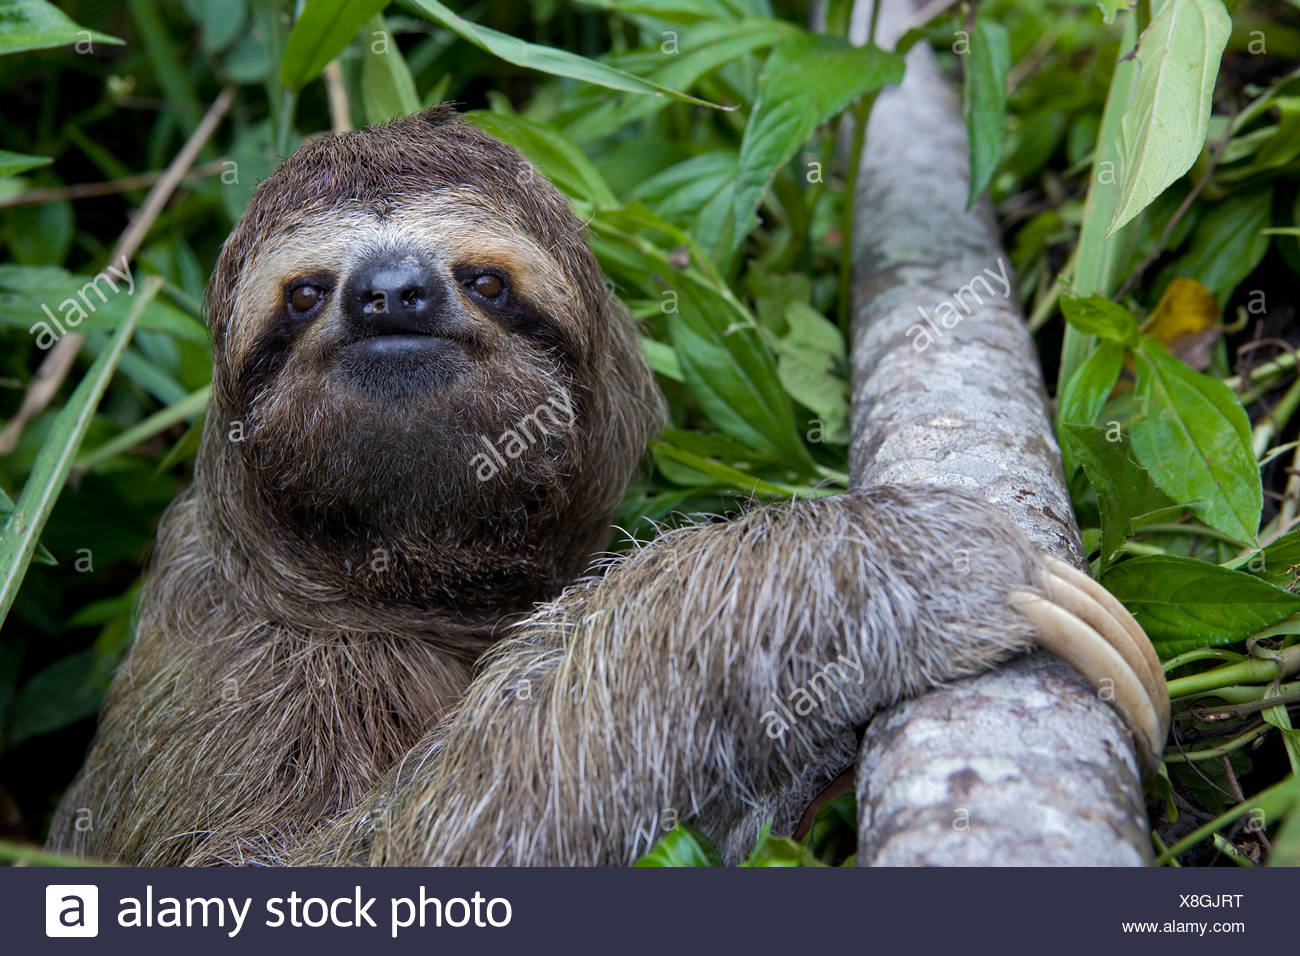 Close-up portrait of a sloth with branch against leaves at Costa Rica - Stock Image